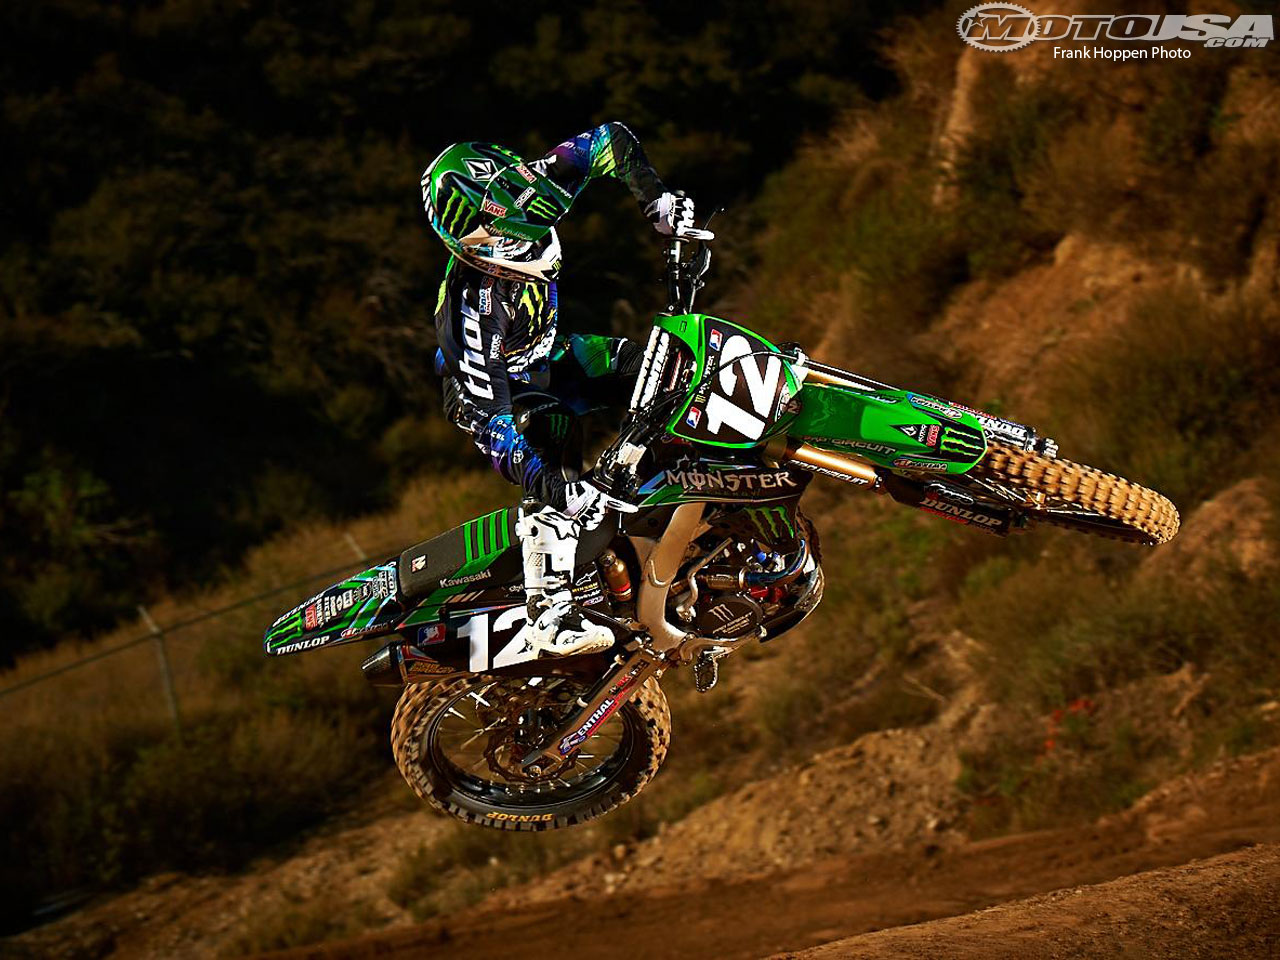 Monster Energy Motocross Wallpaper Blake Baggett   2012 Monster